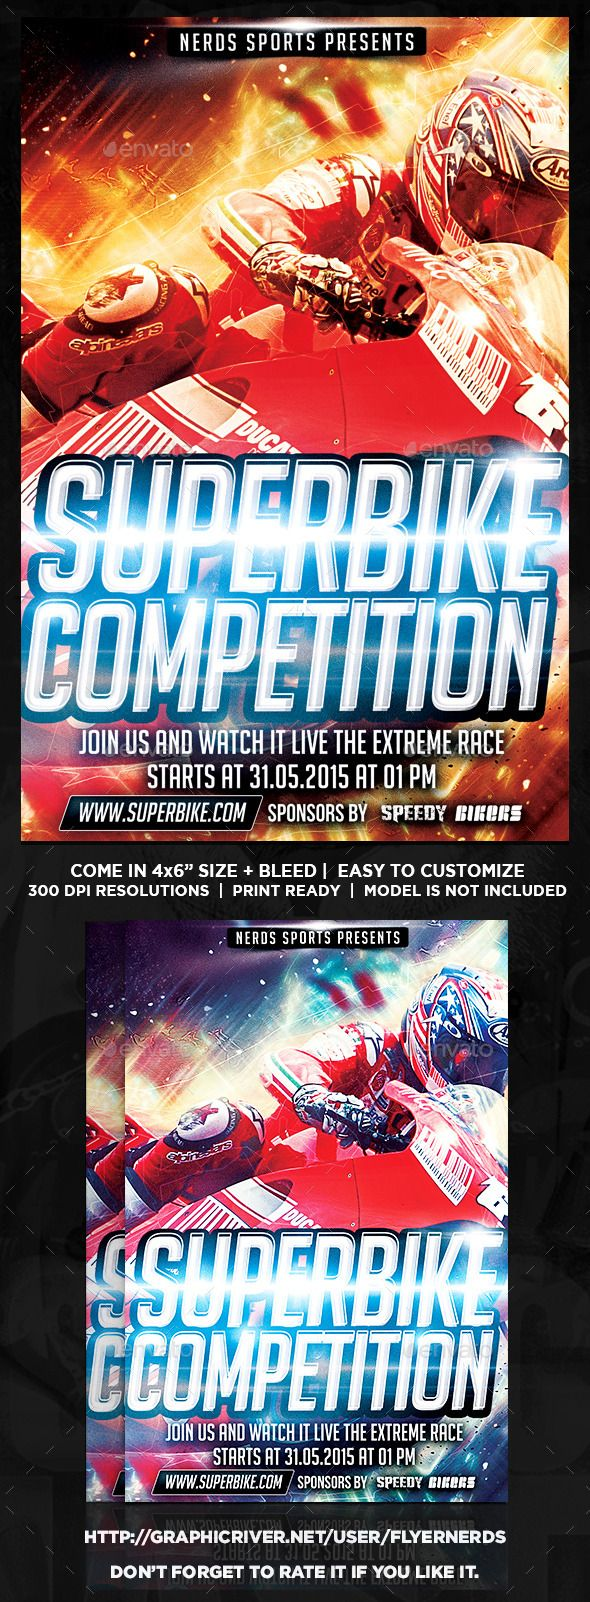 superbike 2k15 sports flyer event flyers flyer template and event